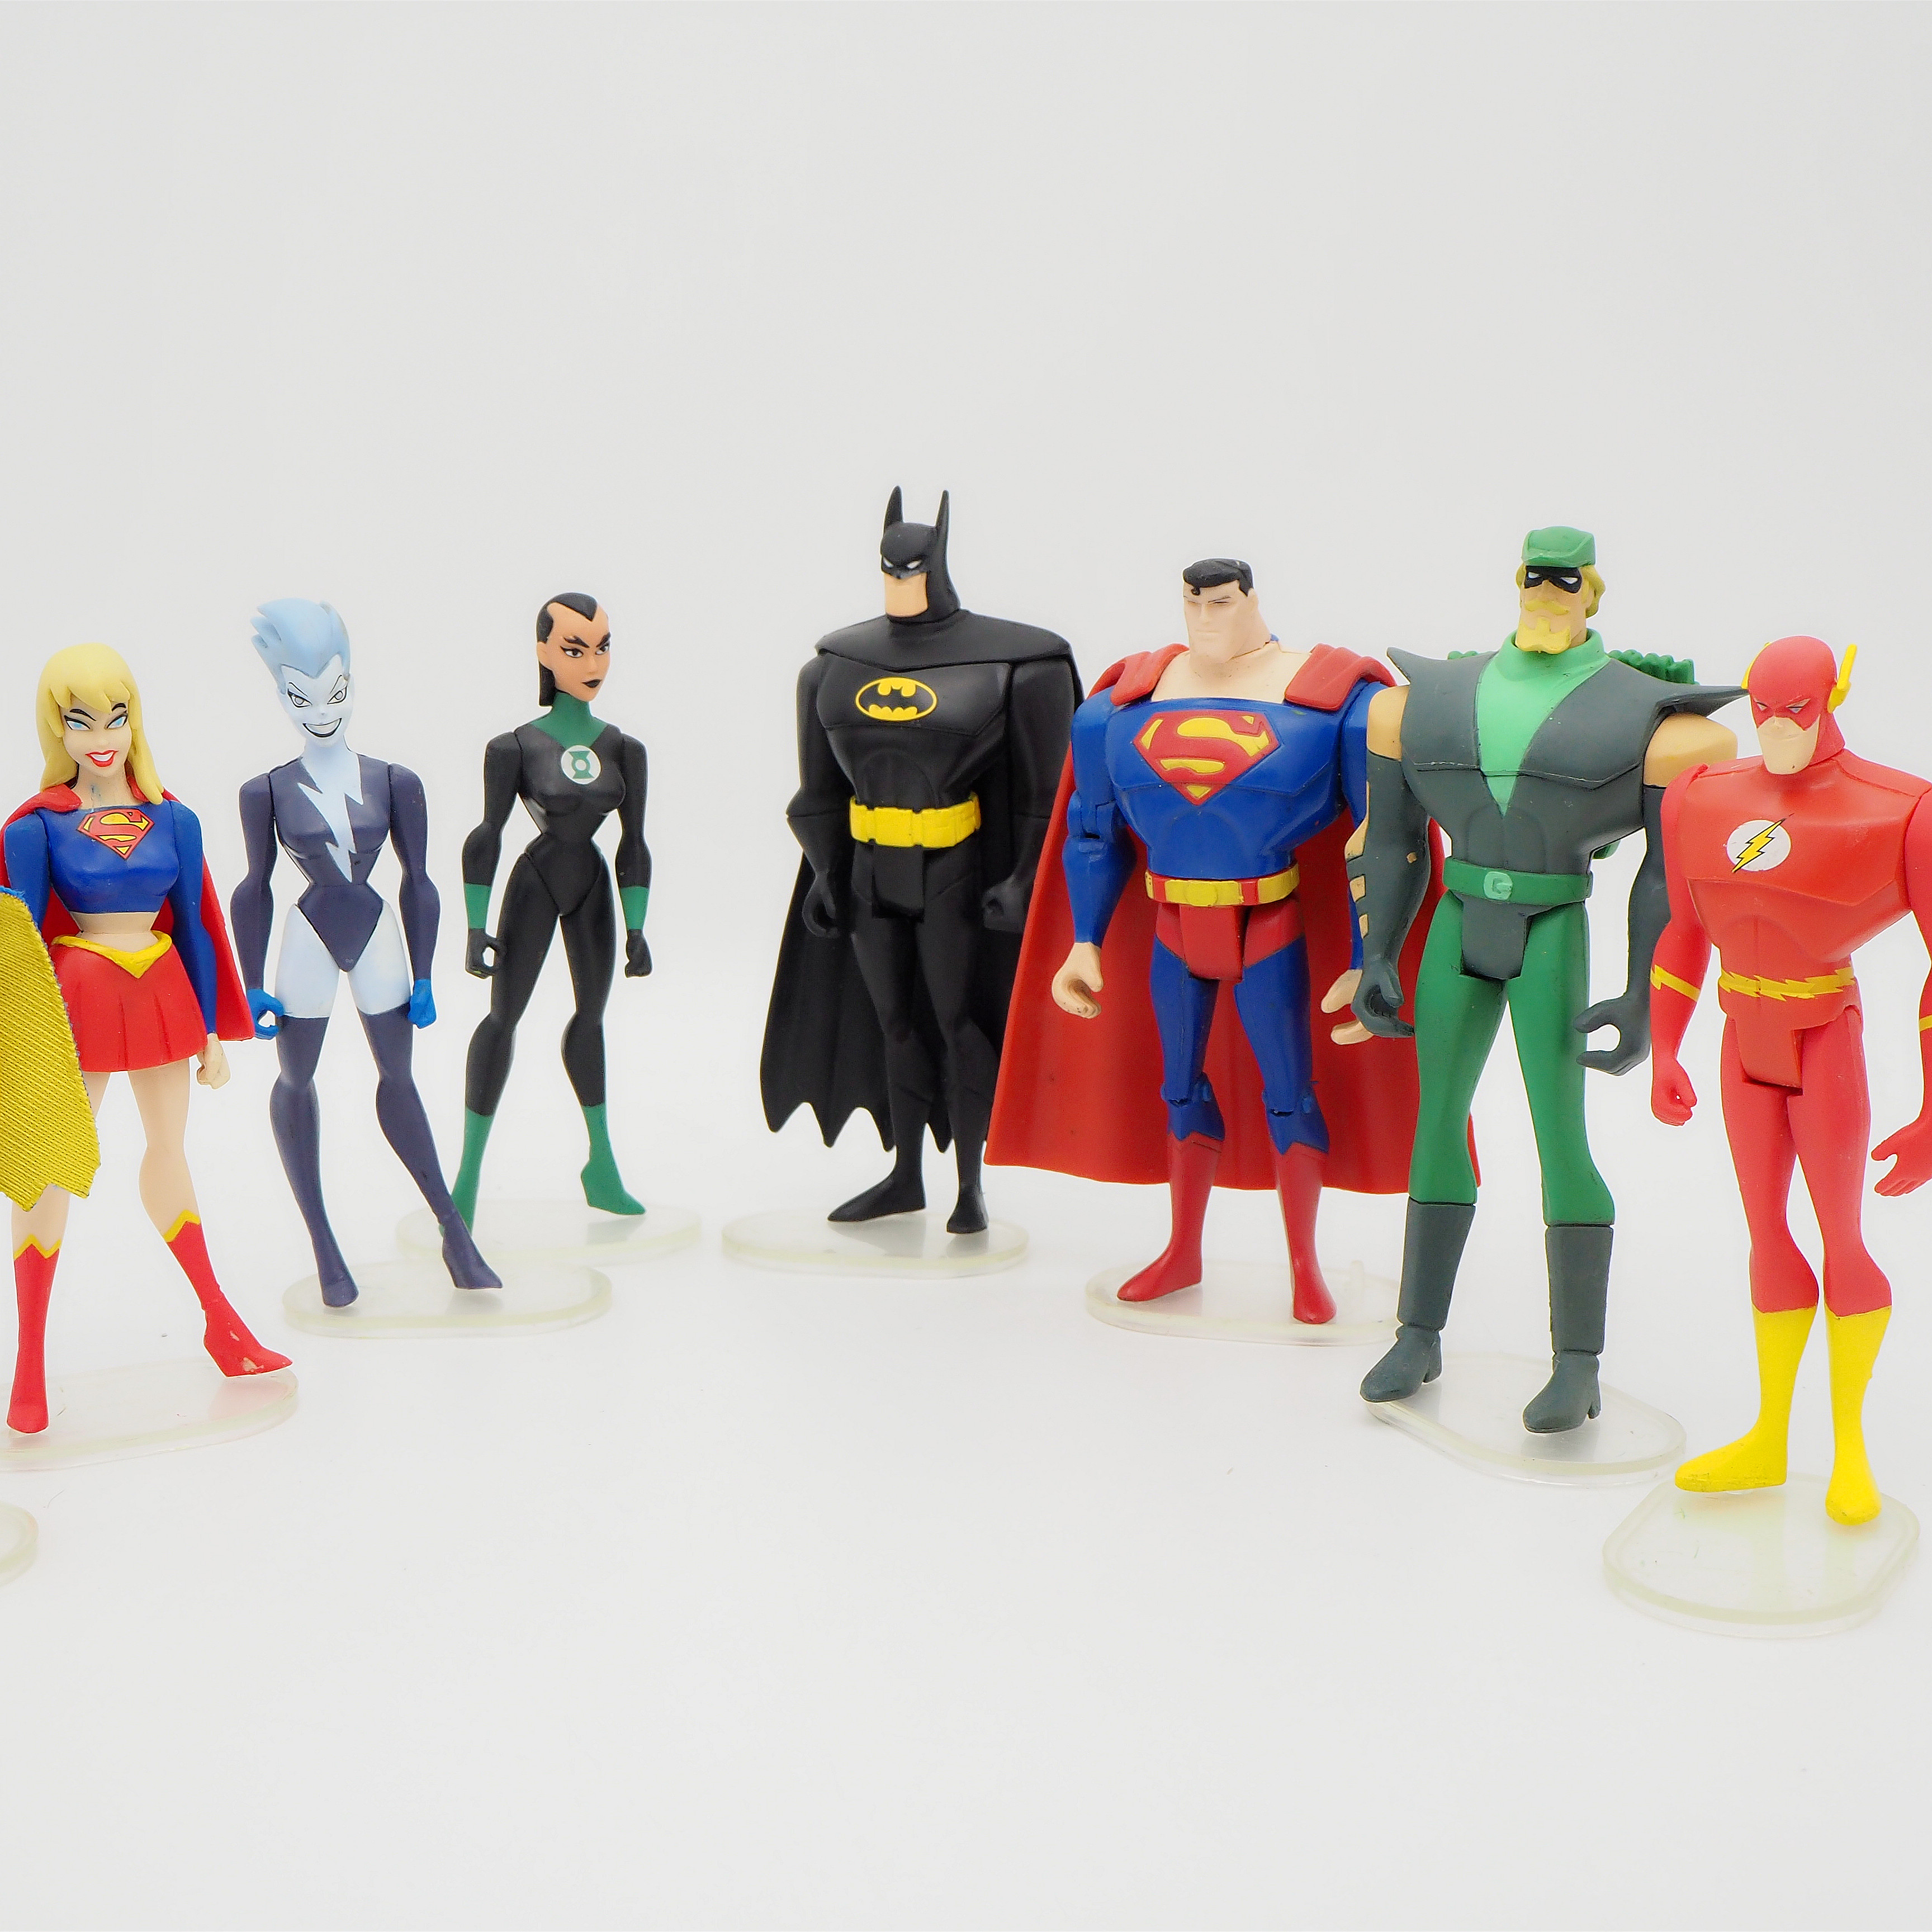 JUSTICE LEAGUE Avengers UNLIMITED DC Universe Super Hero Action Figures Toys 3.75inch